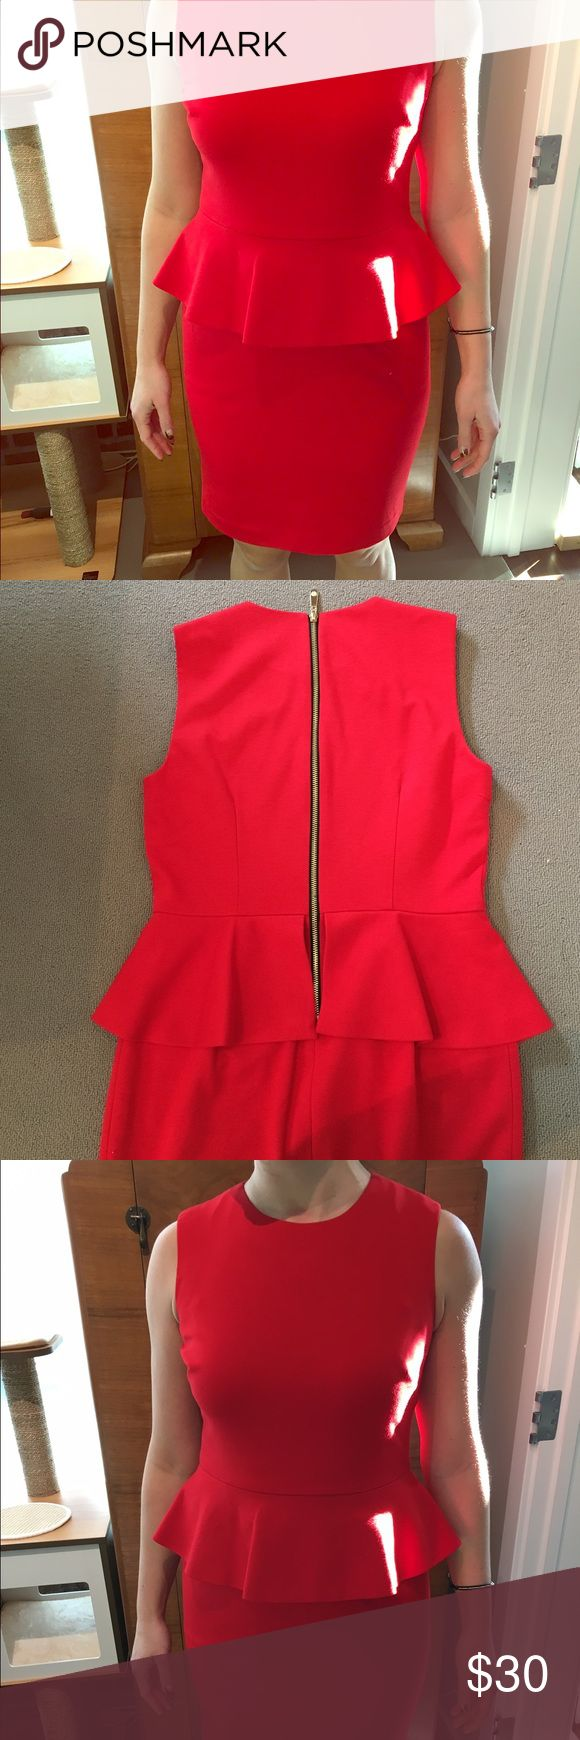 Vince Canute red peplum dress Red peplum dress, very flattering, sexy exposed back zipper Vince Camuto Dresses